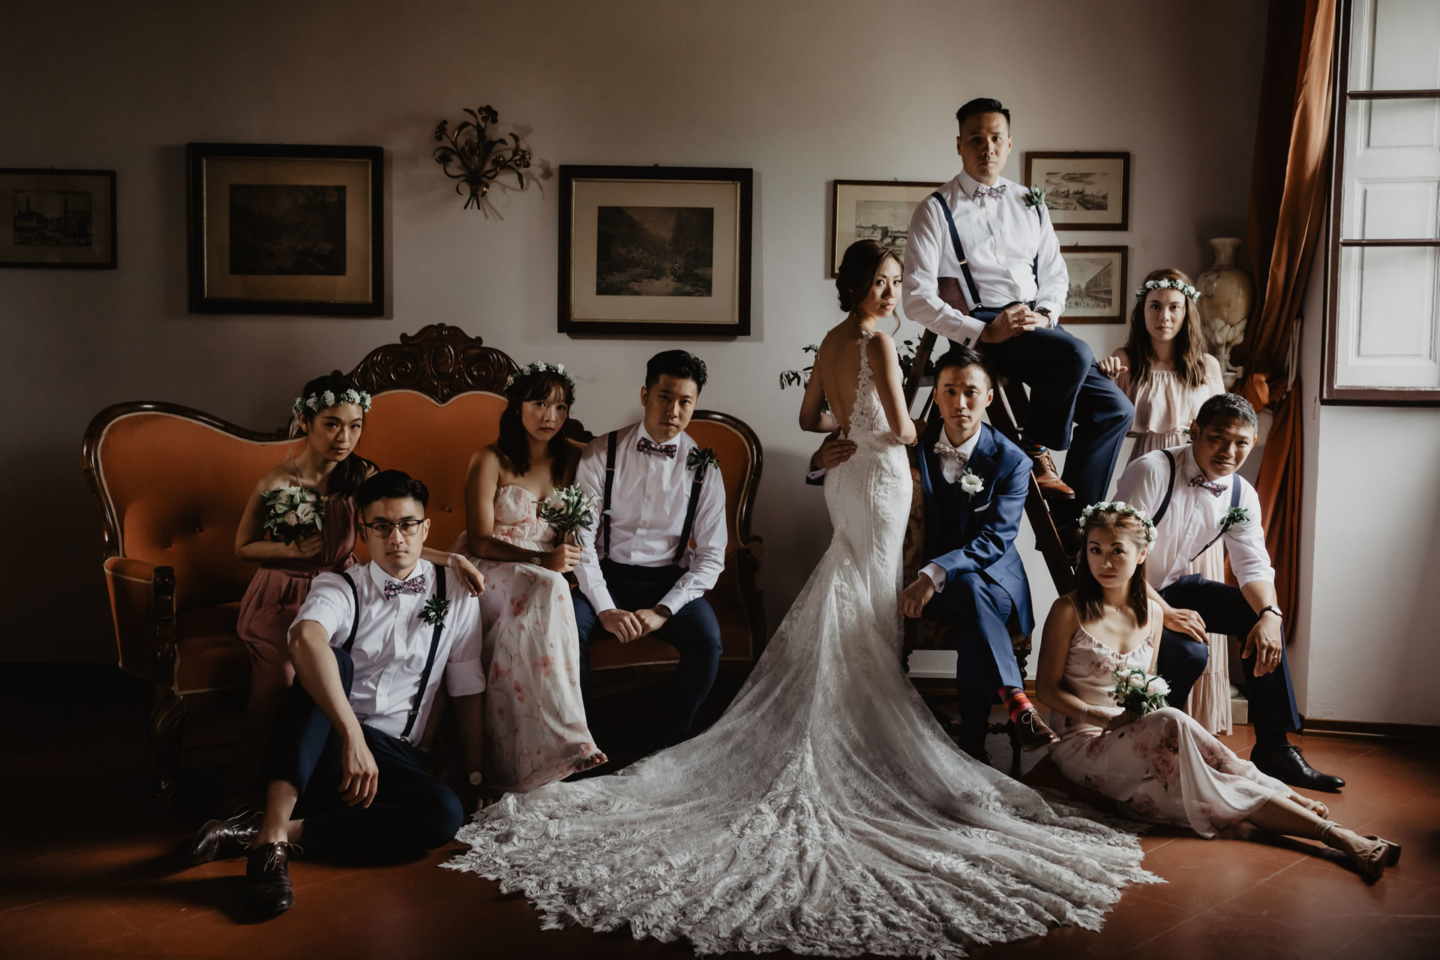 - 11 :: Group's portrait: what remains of that day :: Luxury wedding photography - 10 ::  - 11